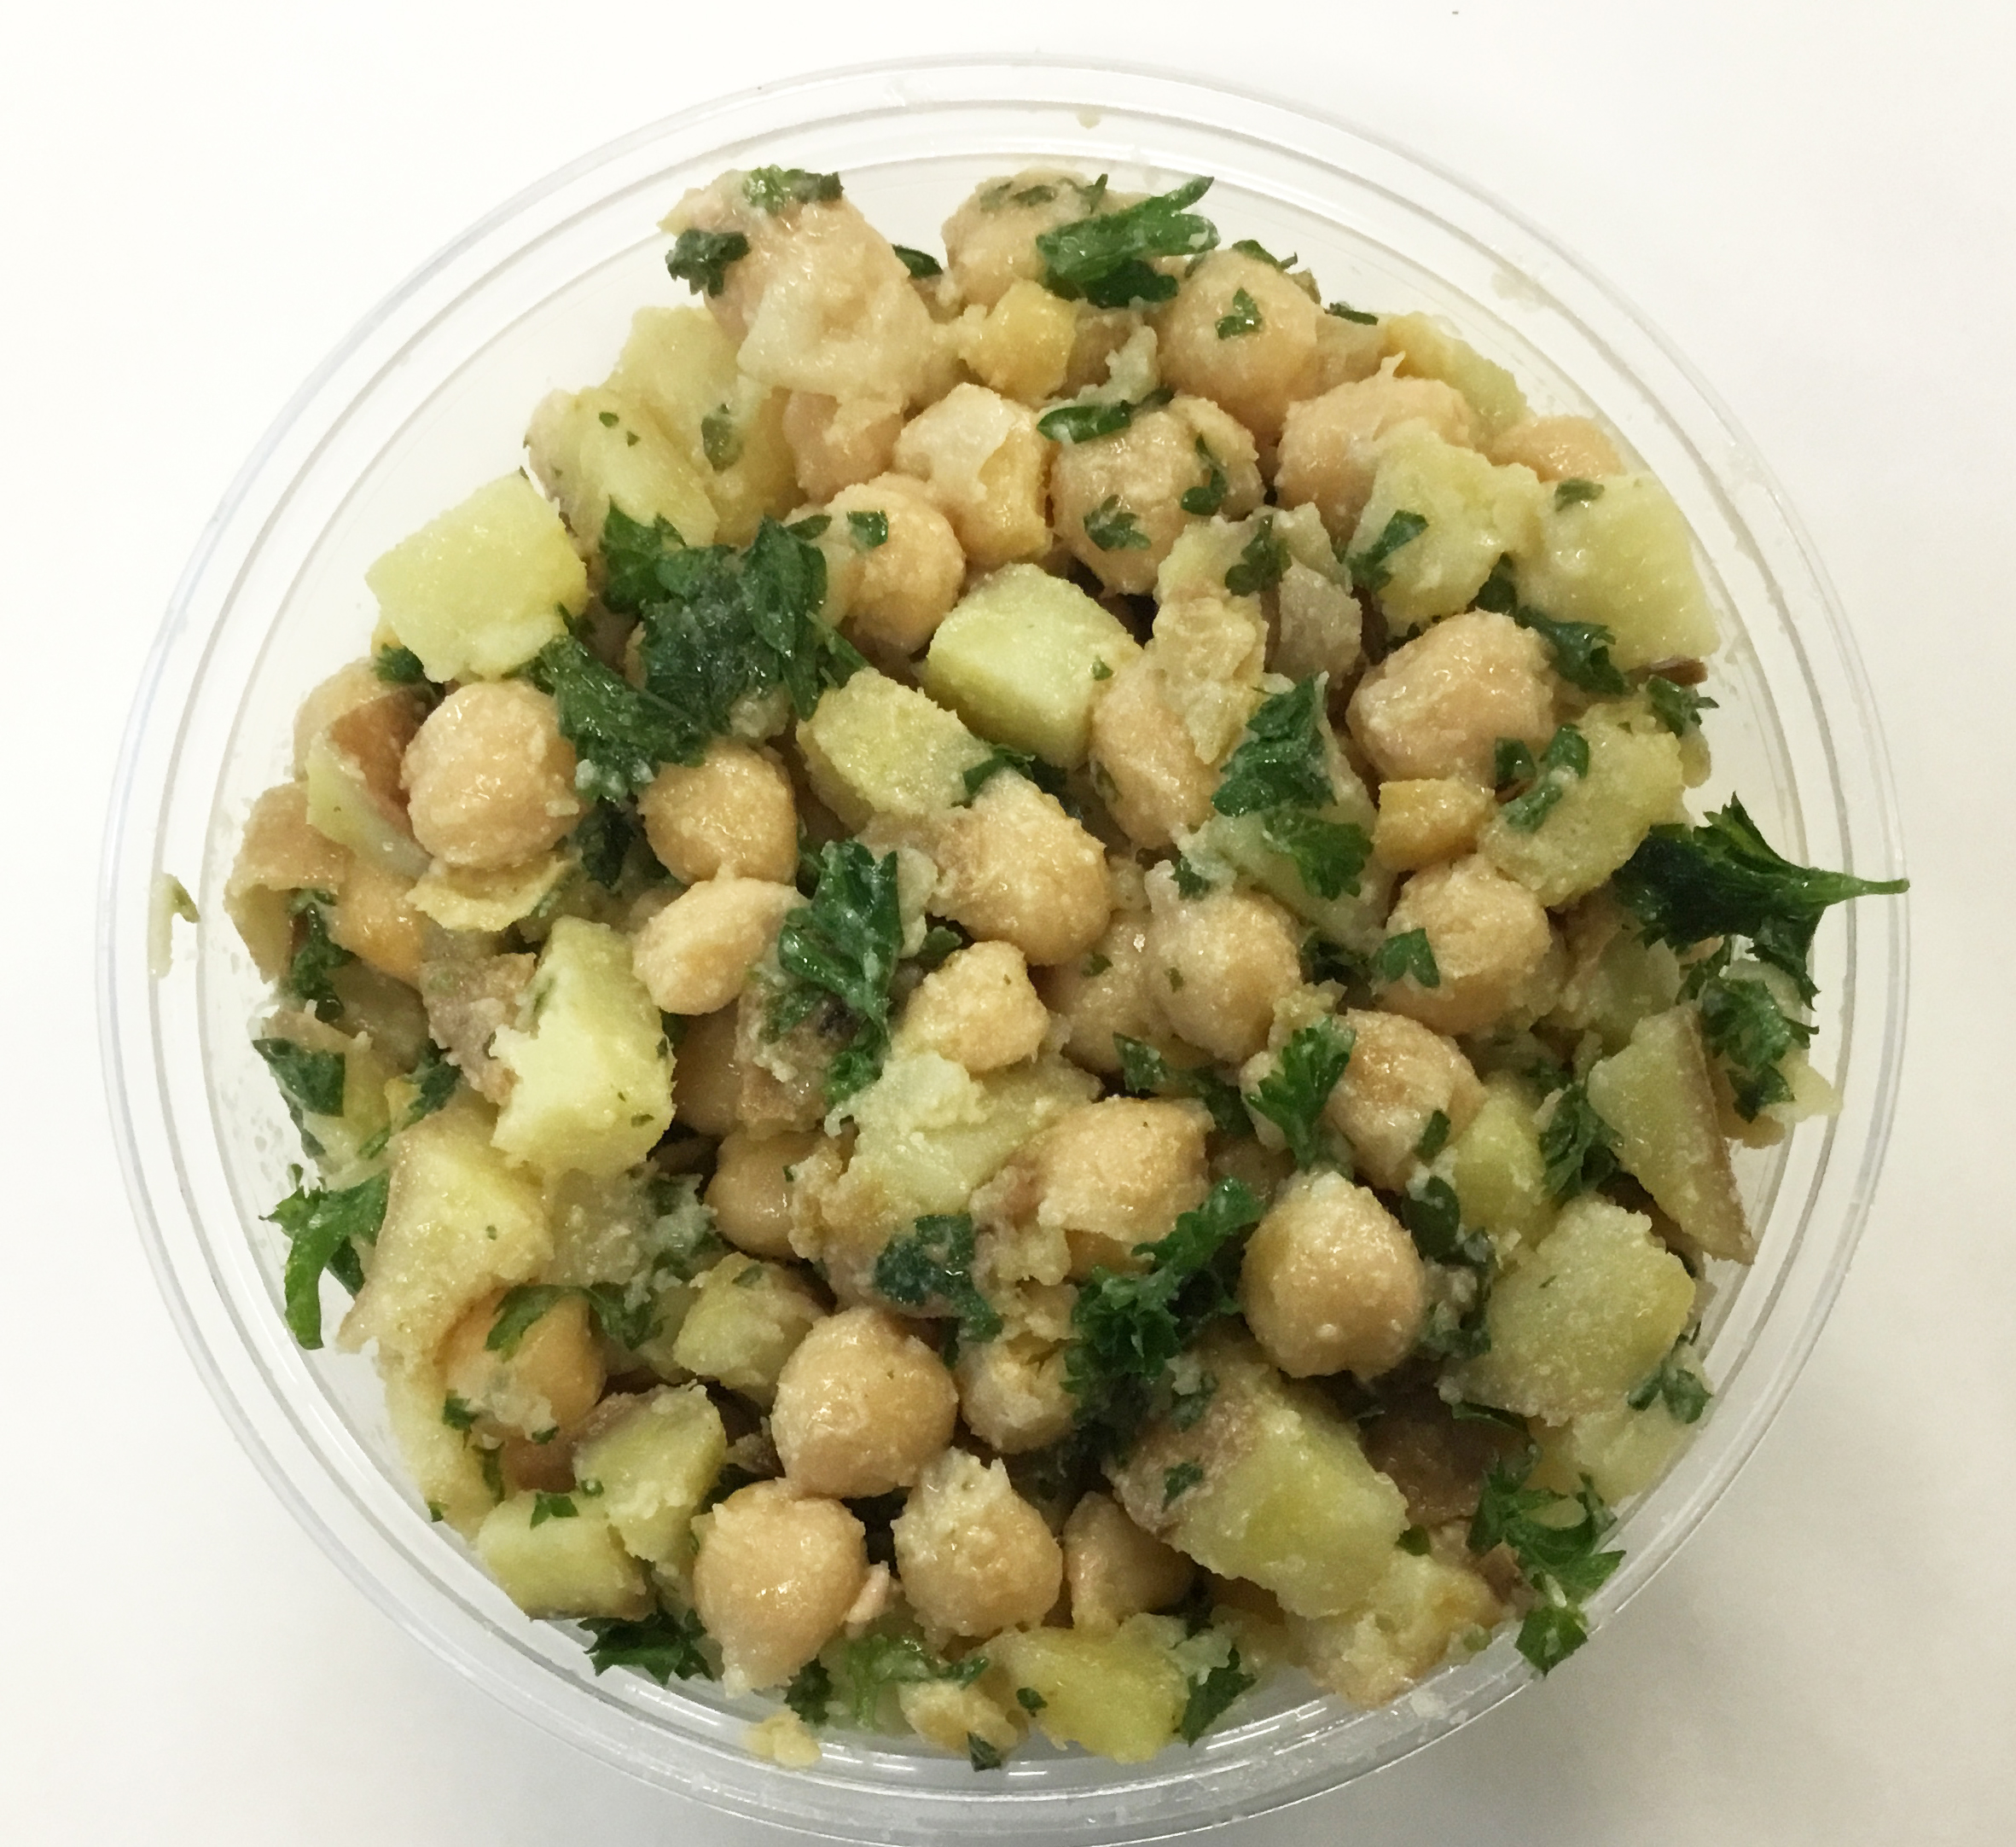 chickpeas and sweet potato and parsley, tahini dressing